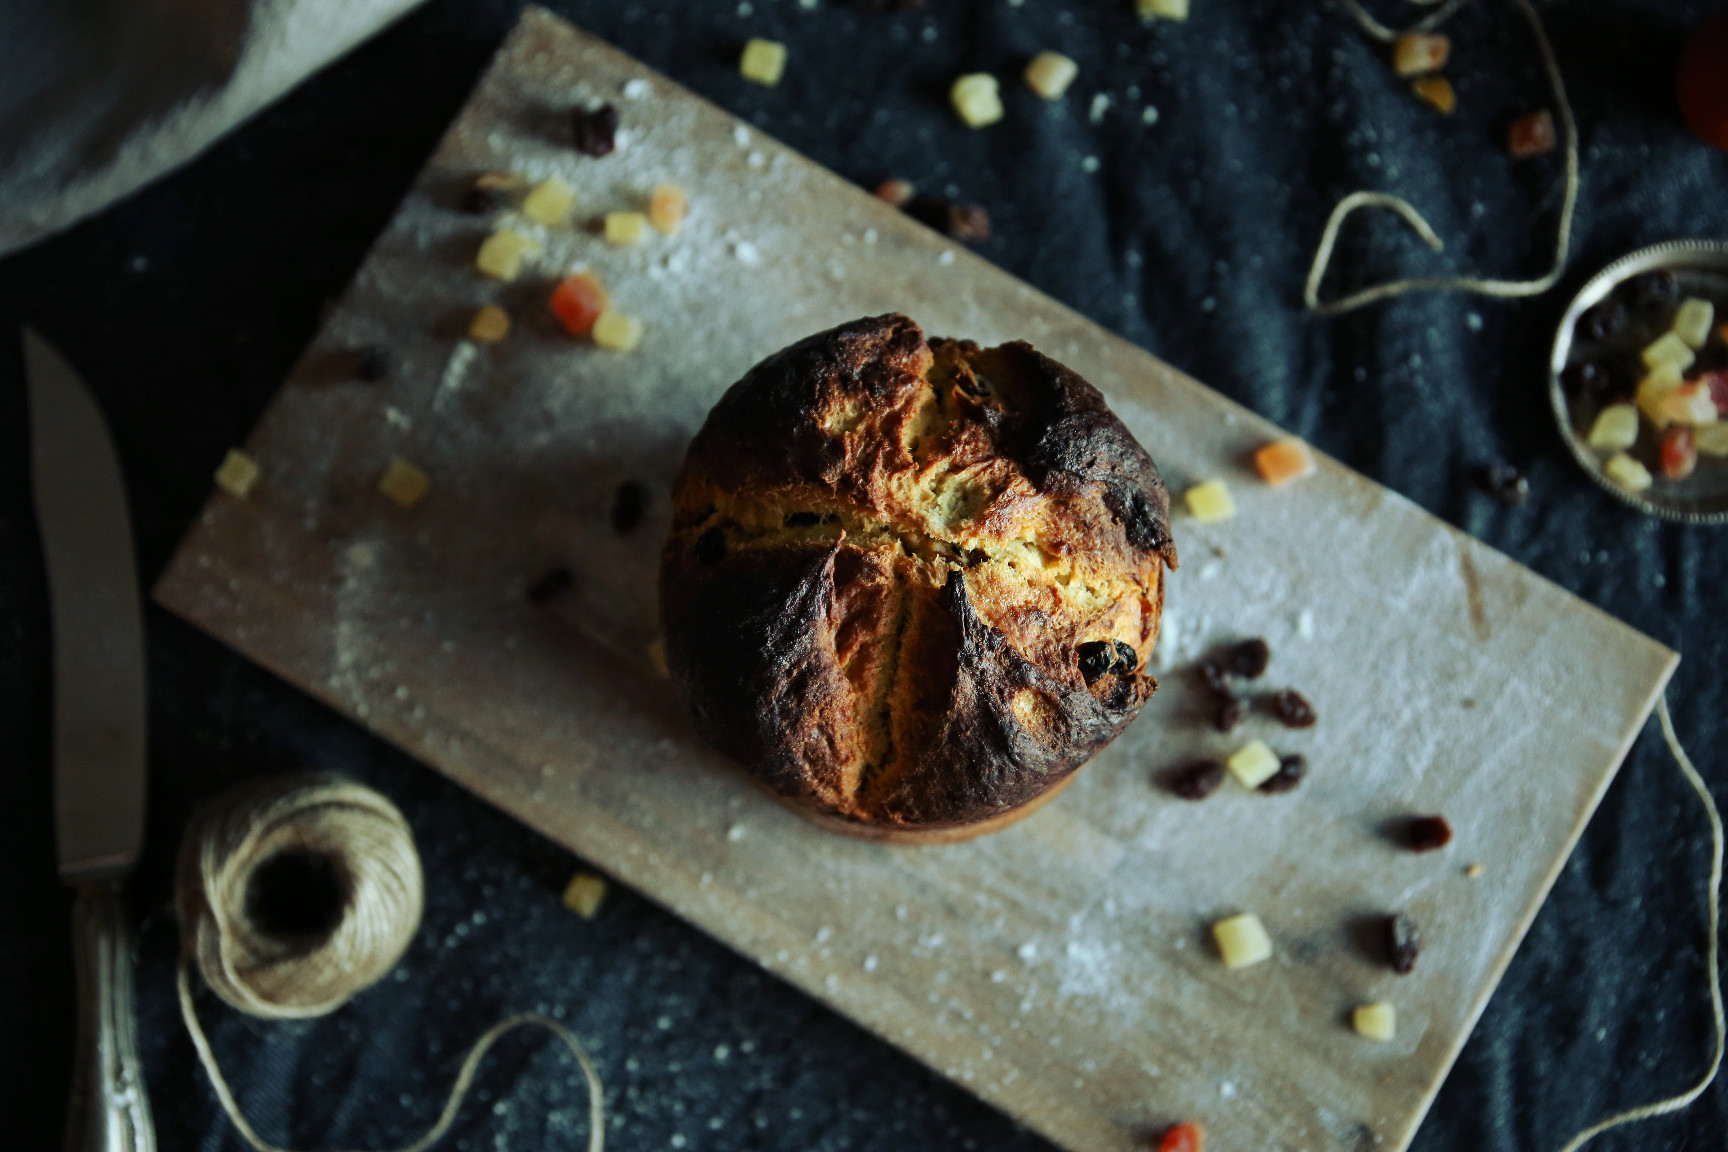 The story of a panettone made from scratch | on Due fili d'erba | Two blades of grass | by Thais FK